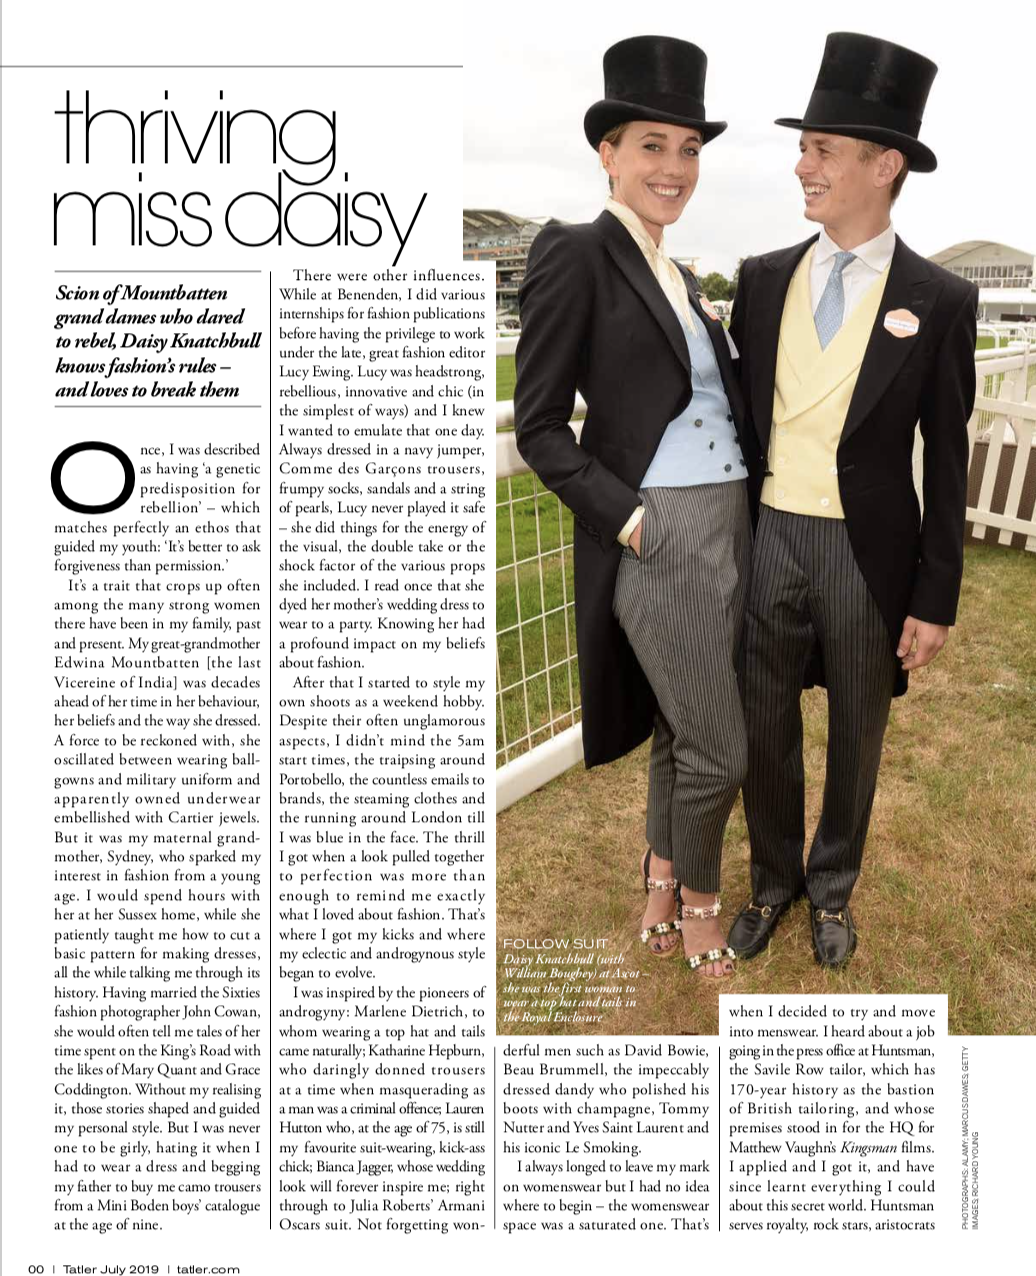 Tatler: Thriving Miss Daisy - How the Founder of The Deck is making strides beyond Savile Row. Daisy Knatchbull knows fashion's rules - and loves to break them